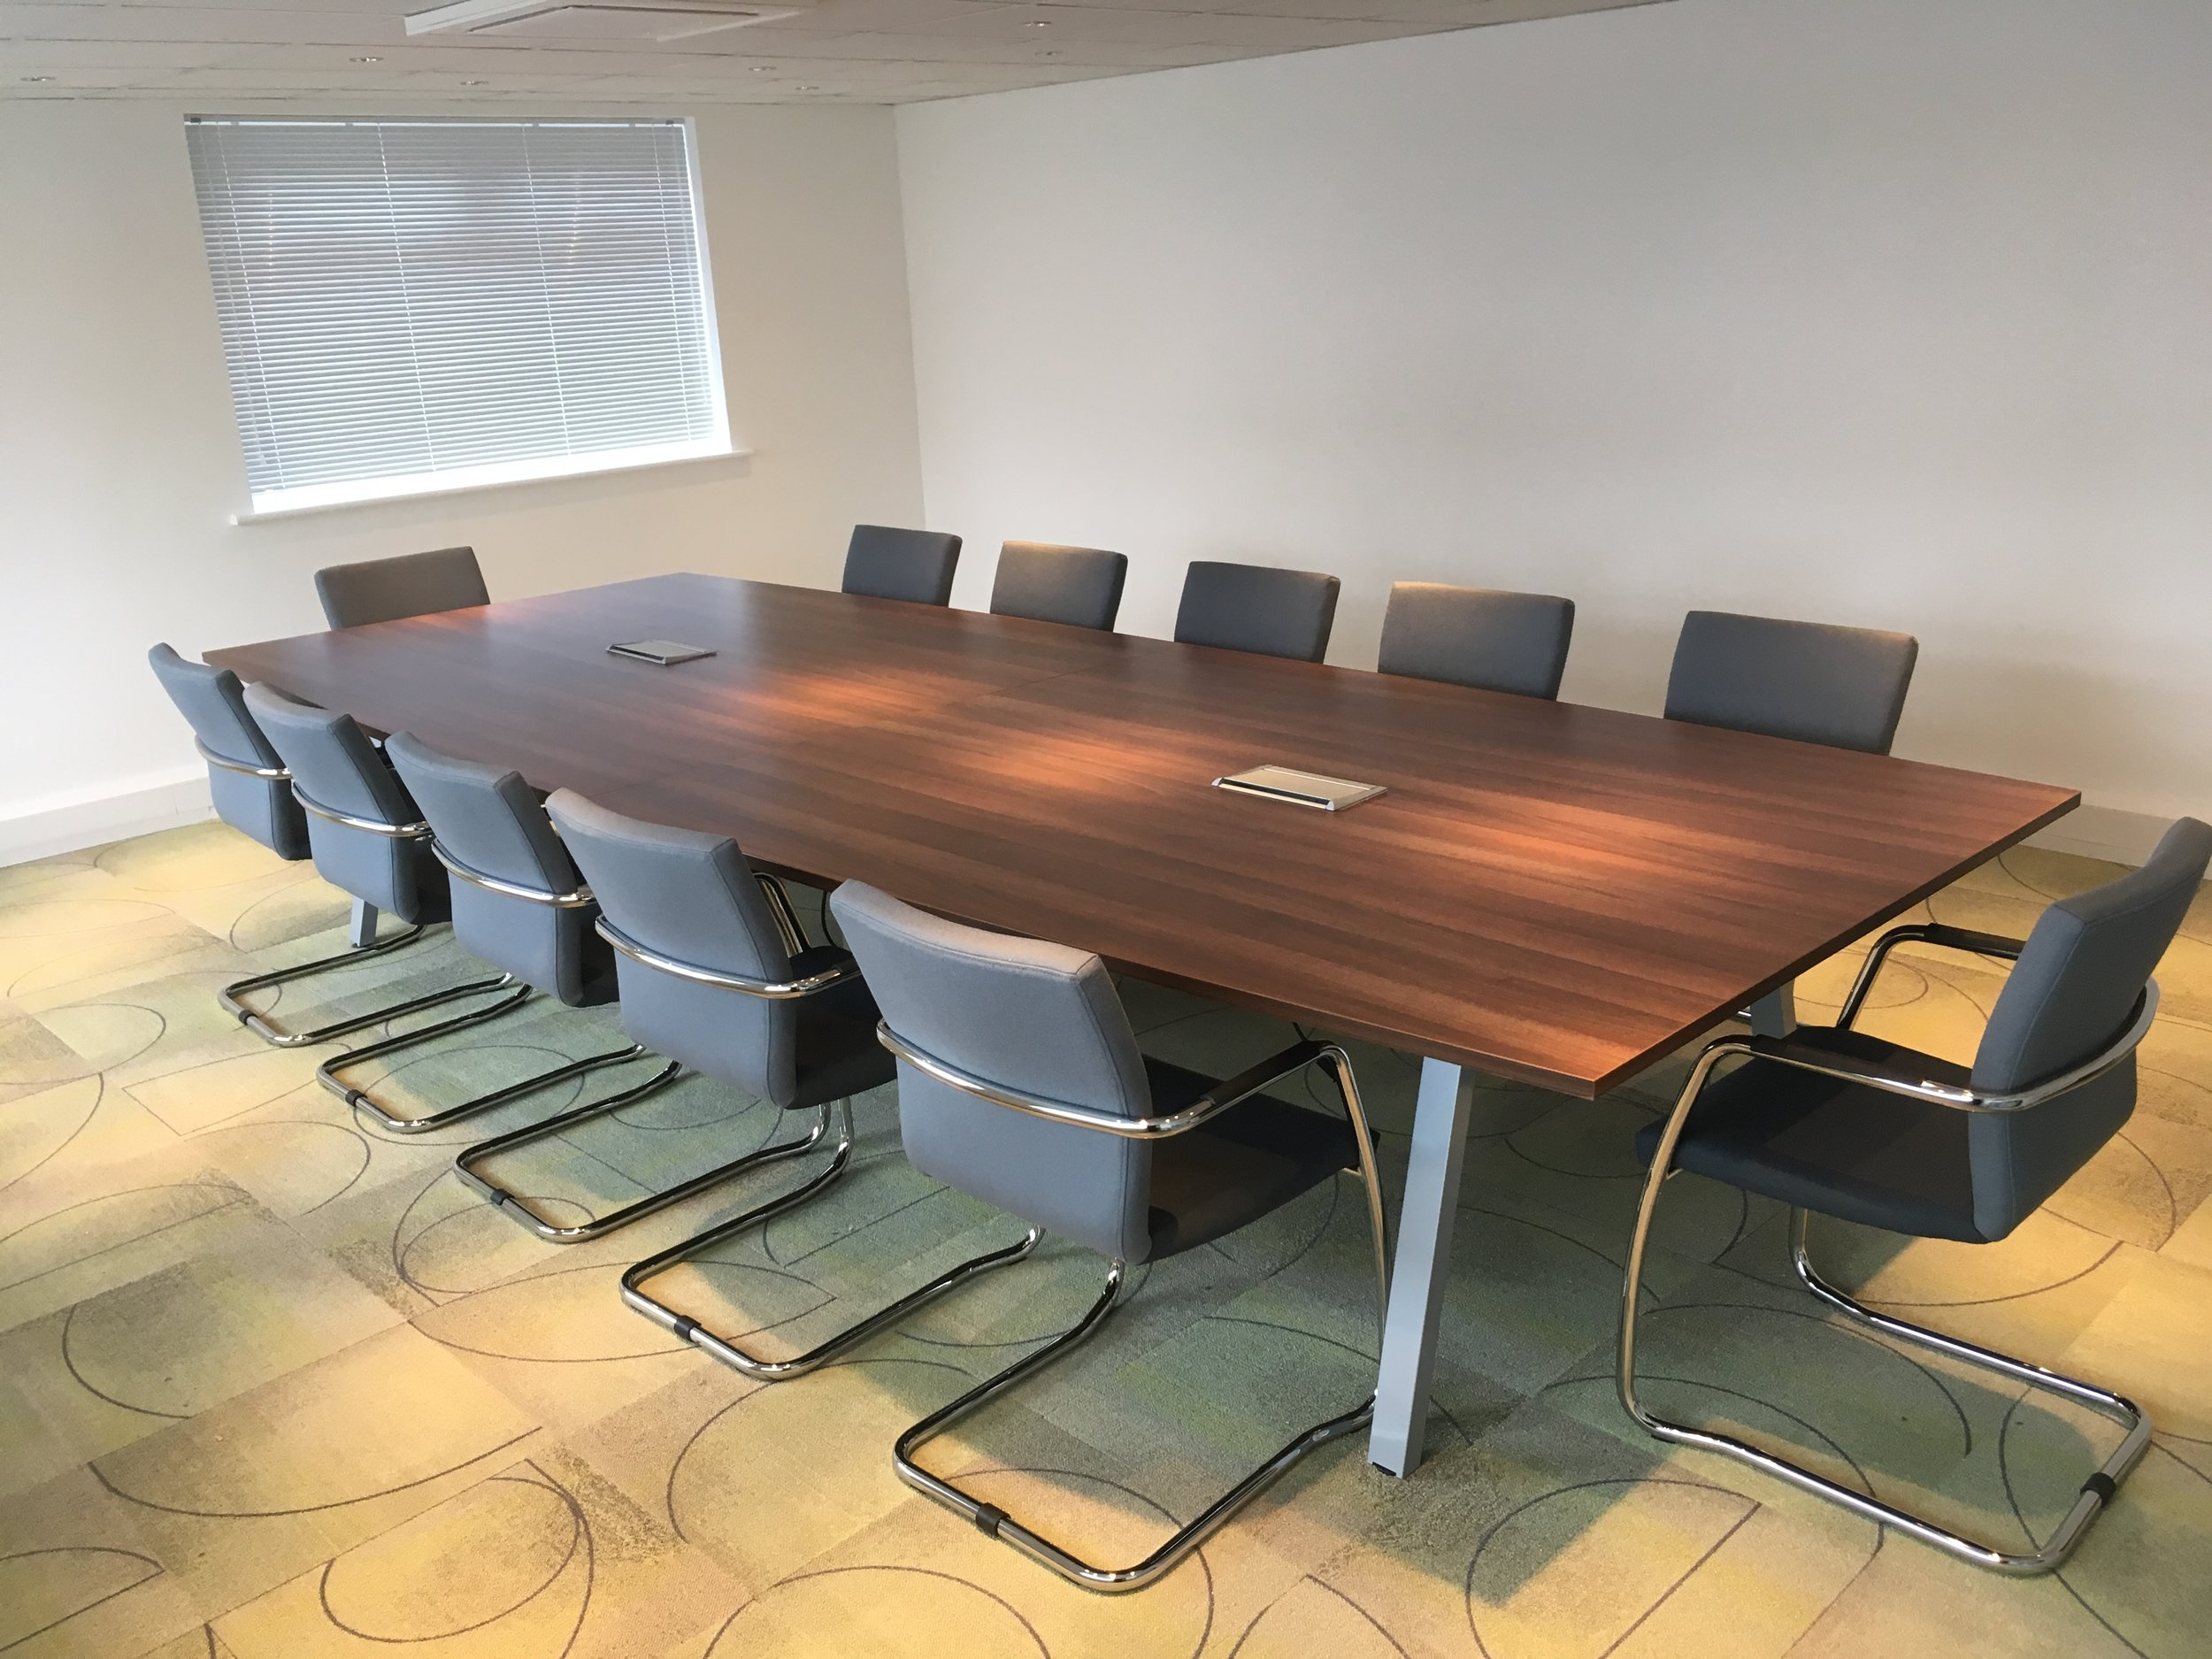 Office remodelling - design and refit - Littlehampton manufacturing sector-7